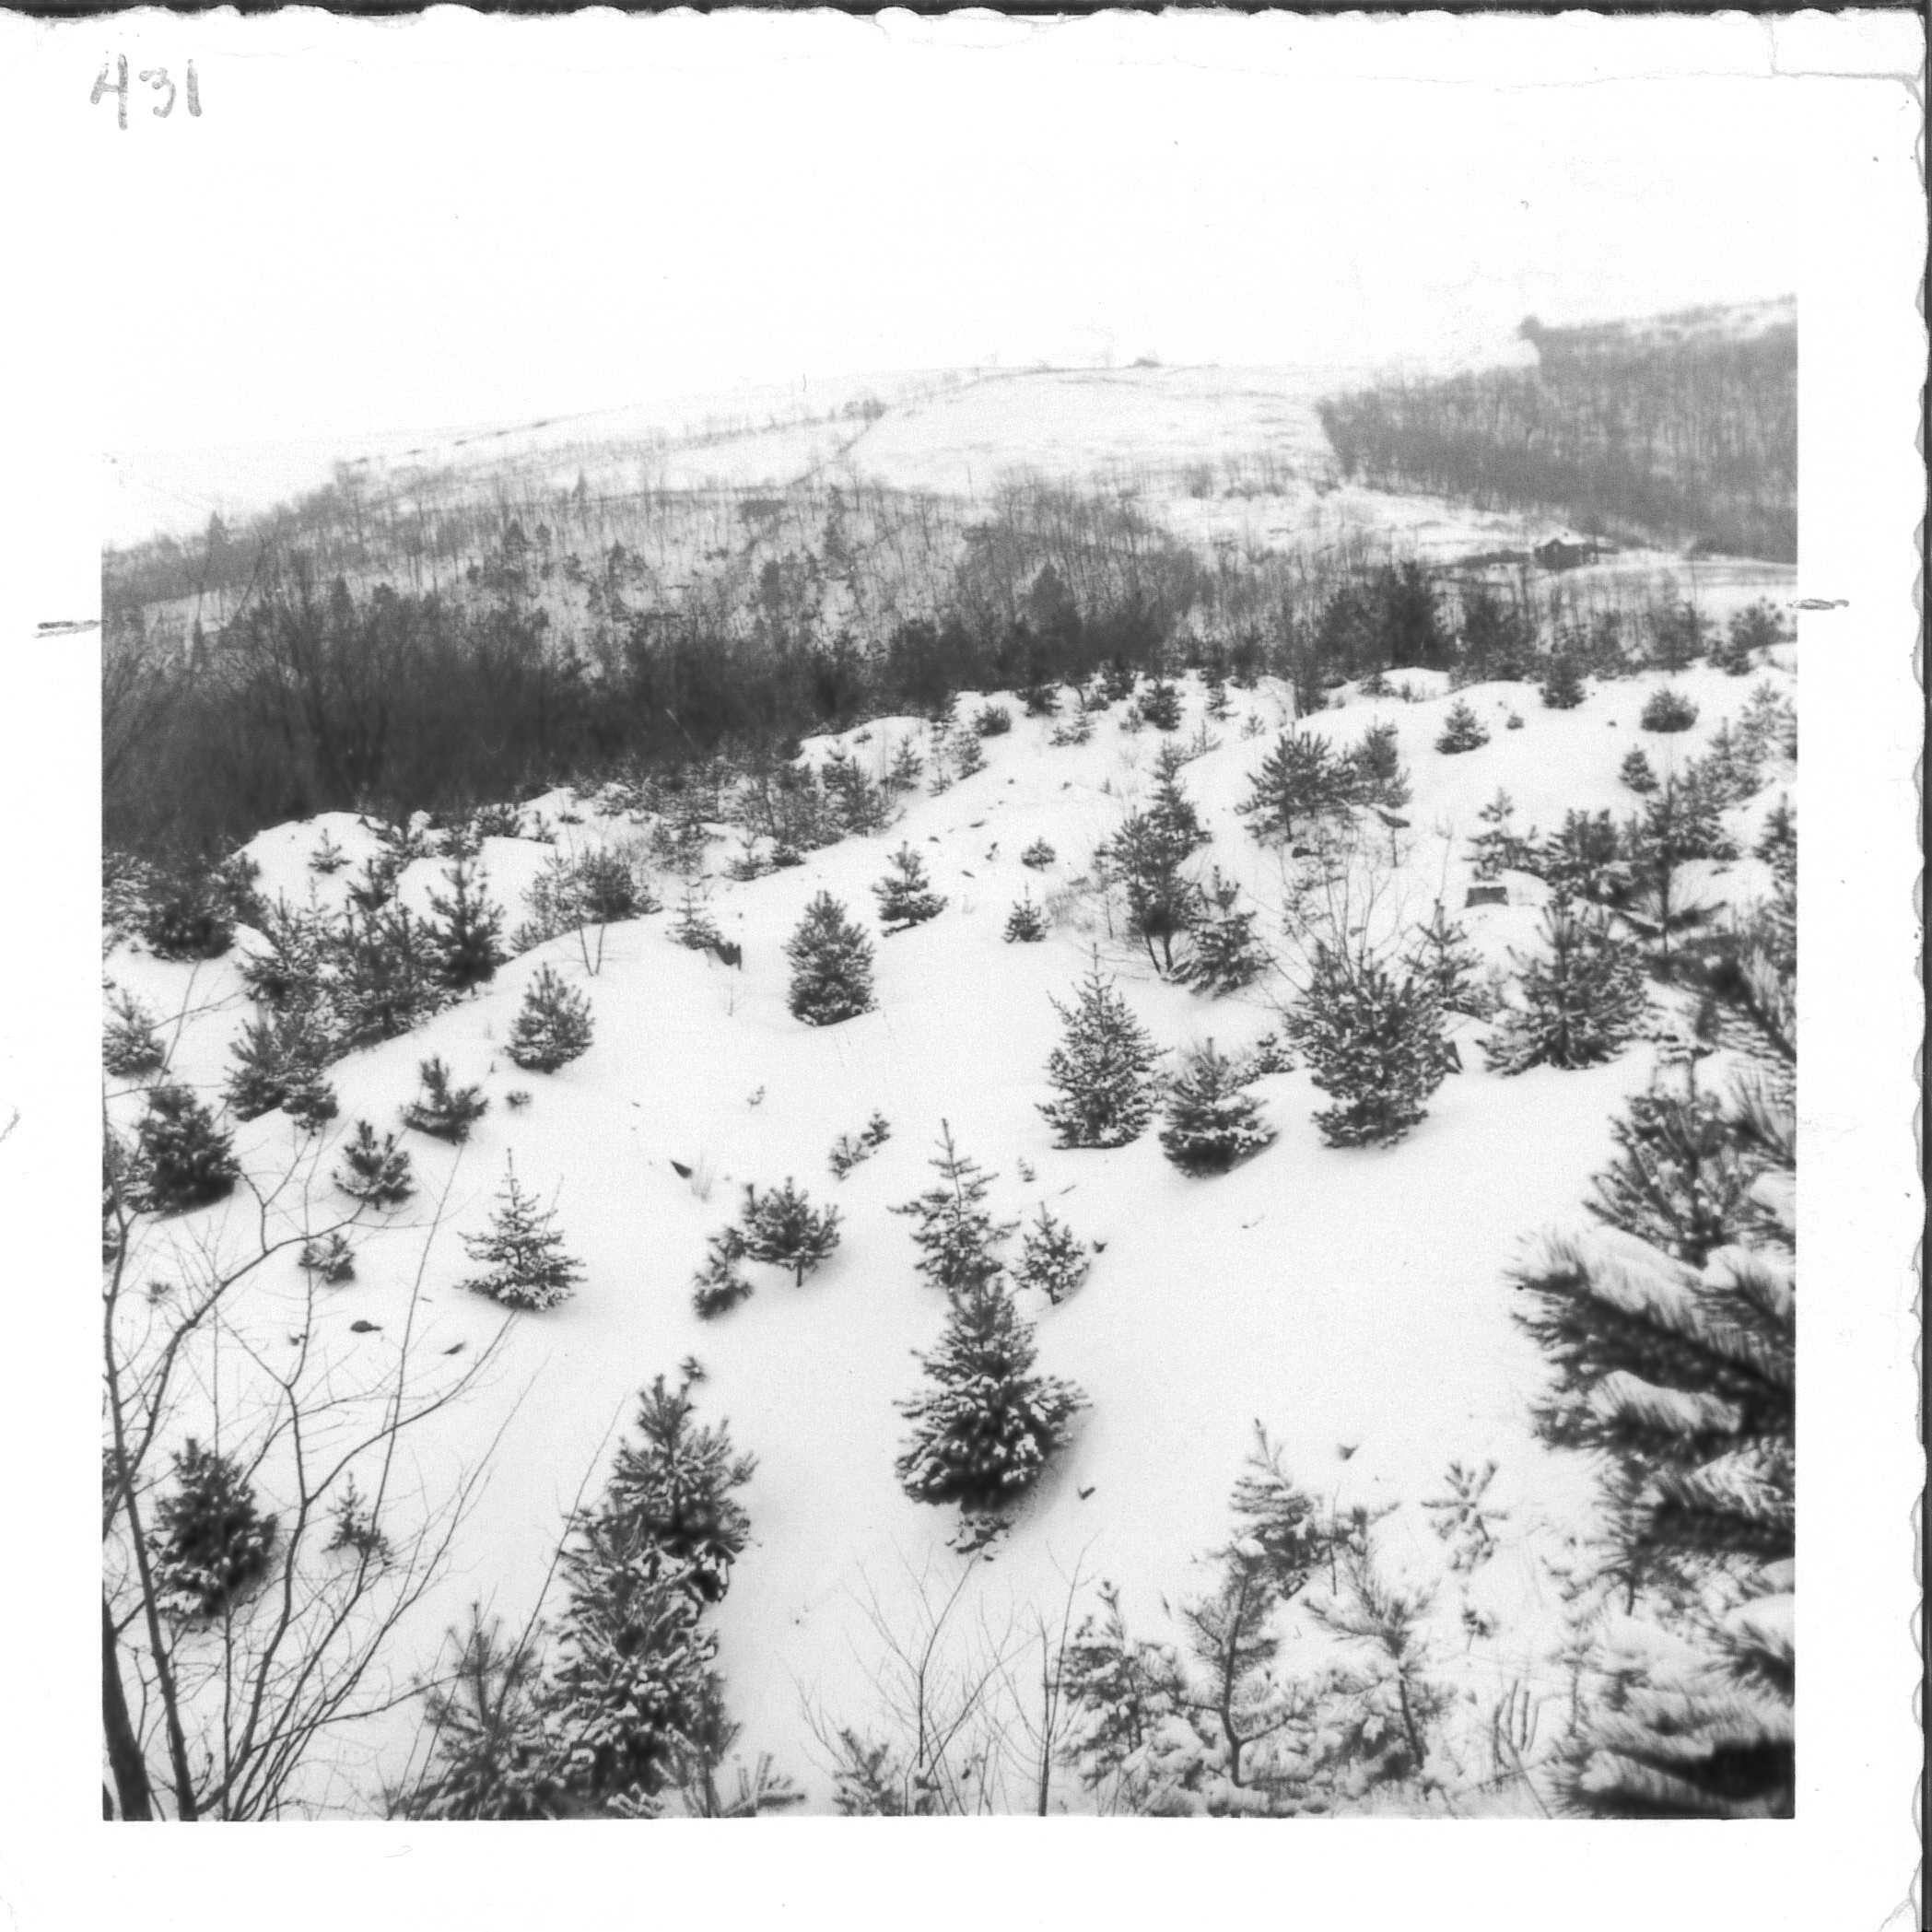 Albert took this image of the 5-year old Scotch Pine plantings. Albert Miller Papers and Photographs, MSS 1095, Meadowcroft Rockshelter and Historic Village.